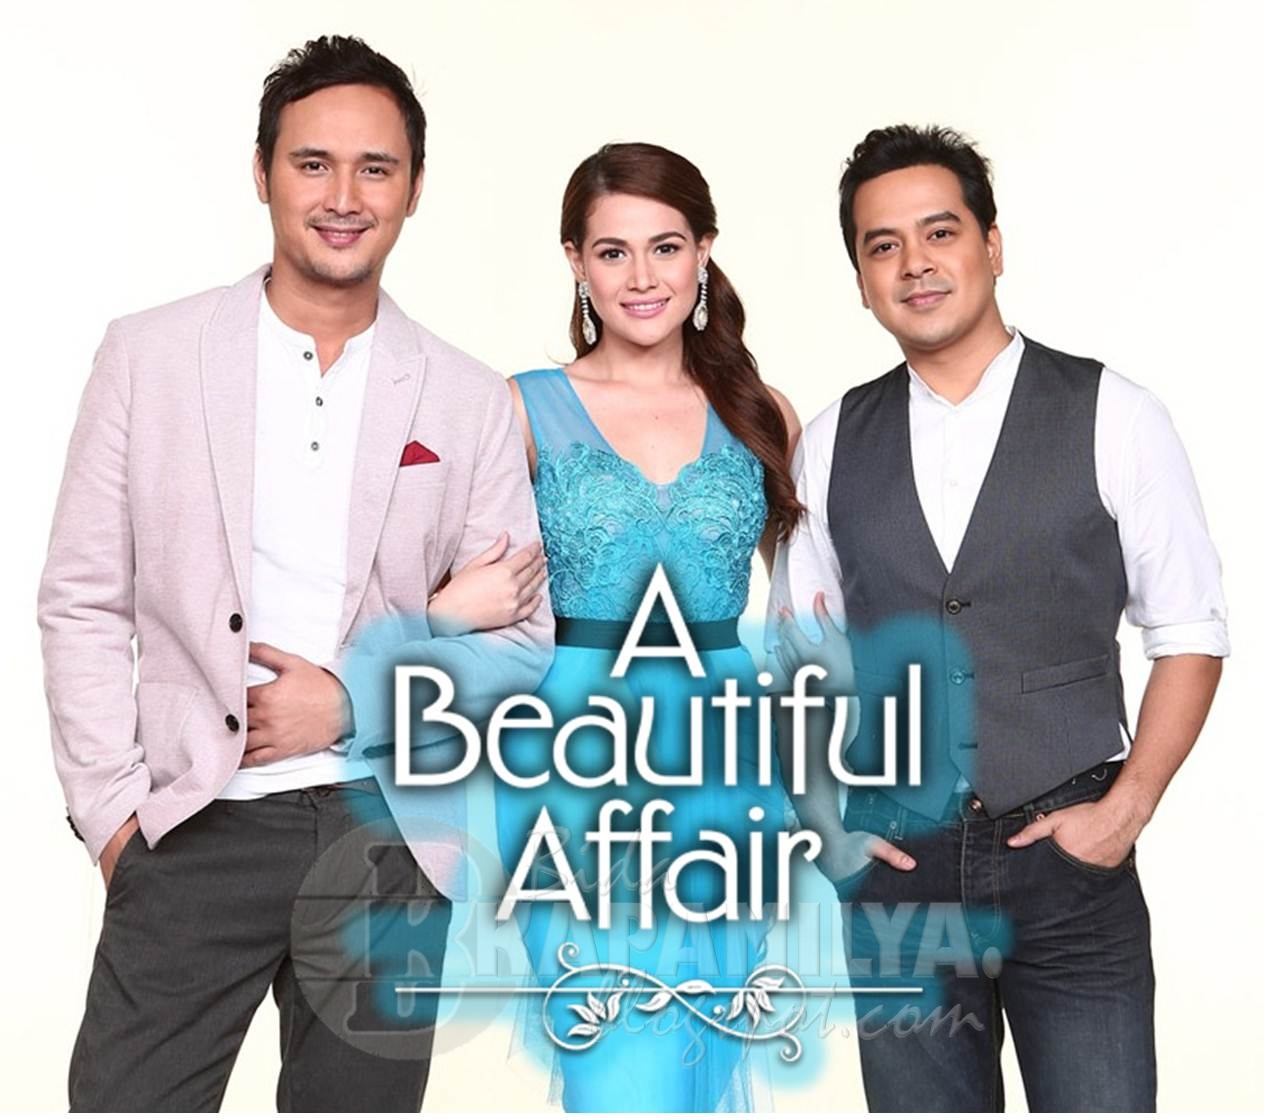 A BEAUTIFUL AFFAIR - OCT. 30, 2012 PART 1/4